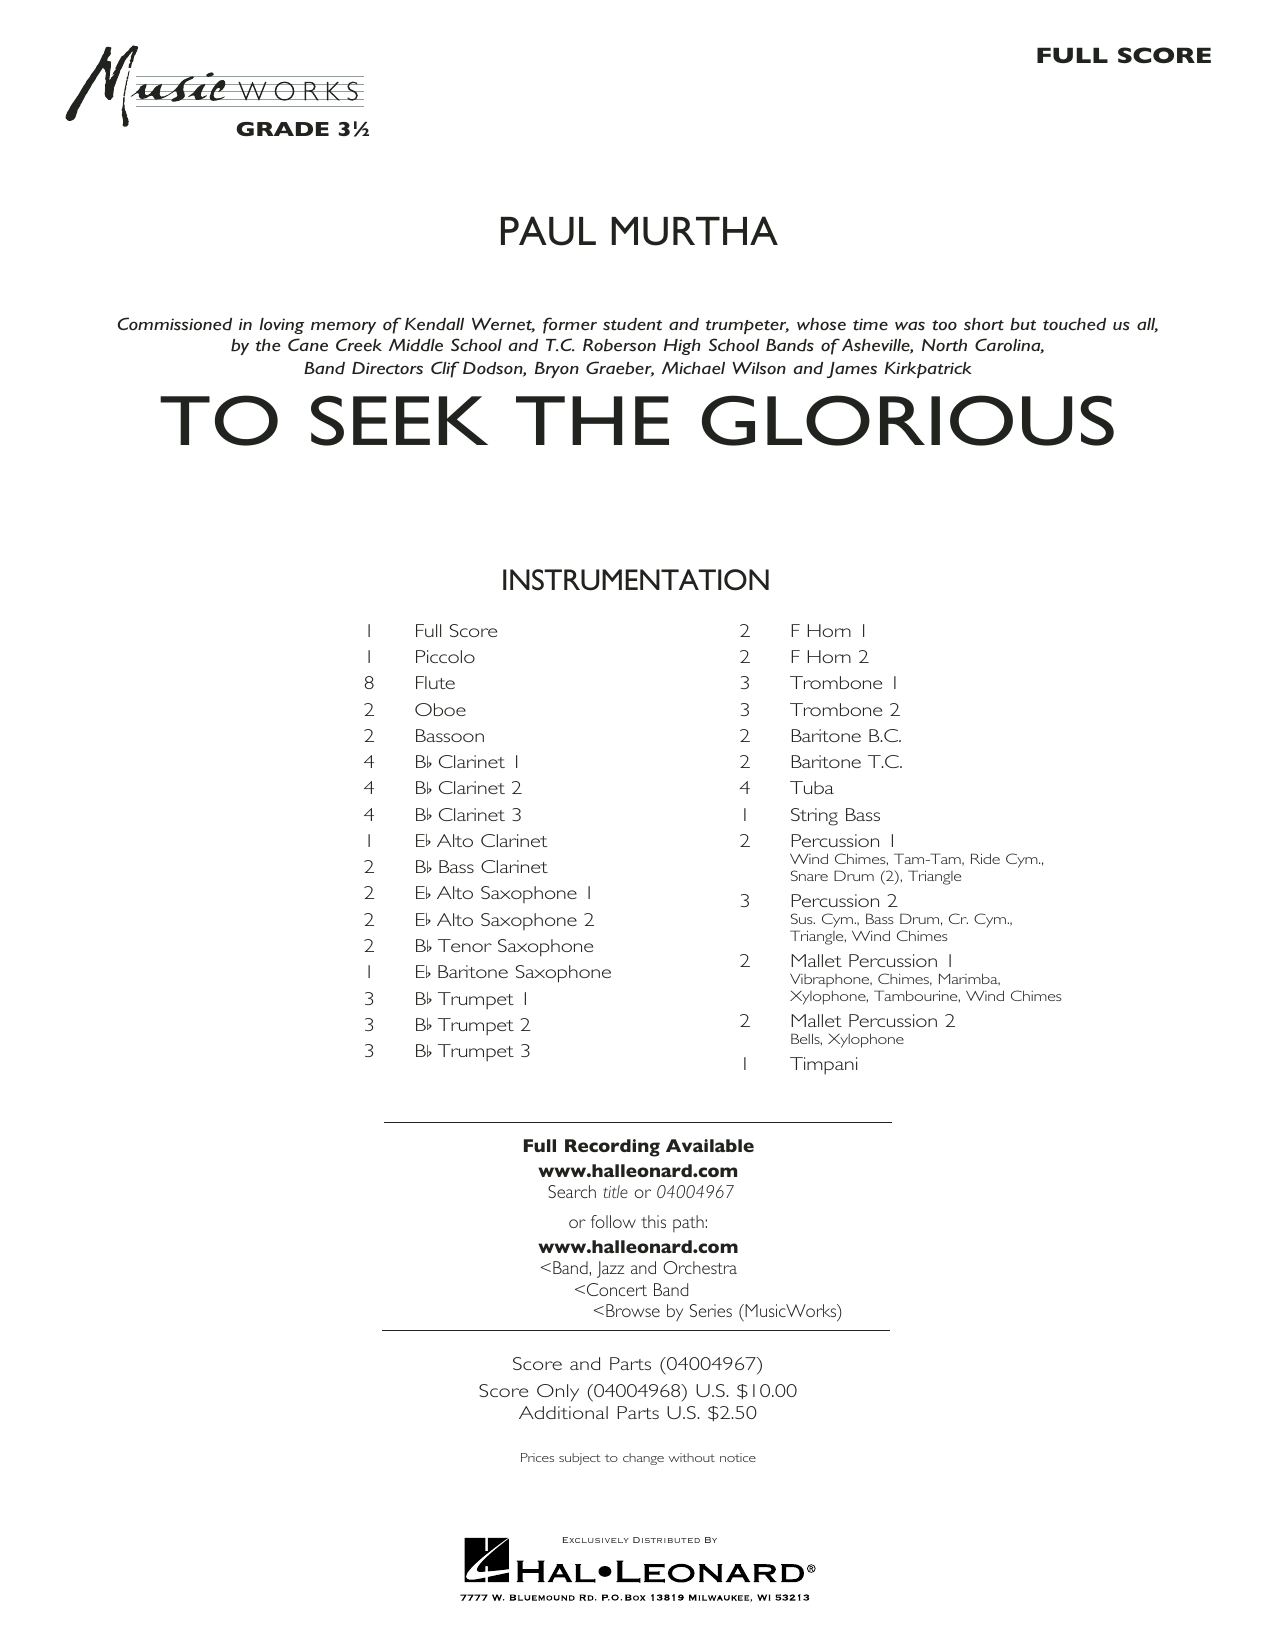 Paul Murtha To Seek the Glorious - Conductor Score (Full Score) sheet music preview music notes and score for Concert Band including 39 page(s)